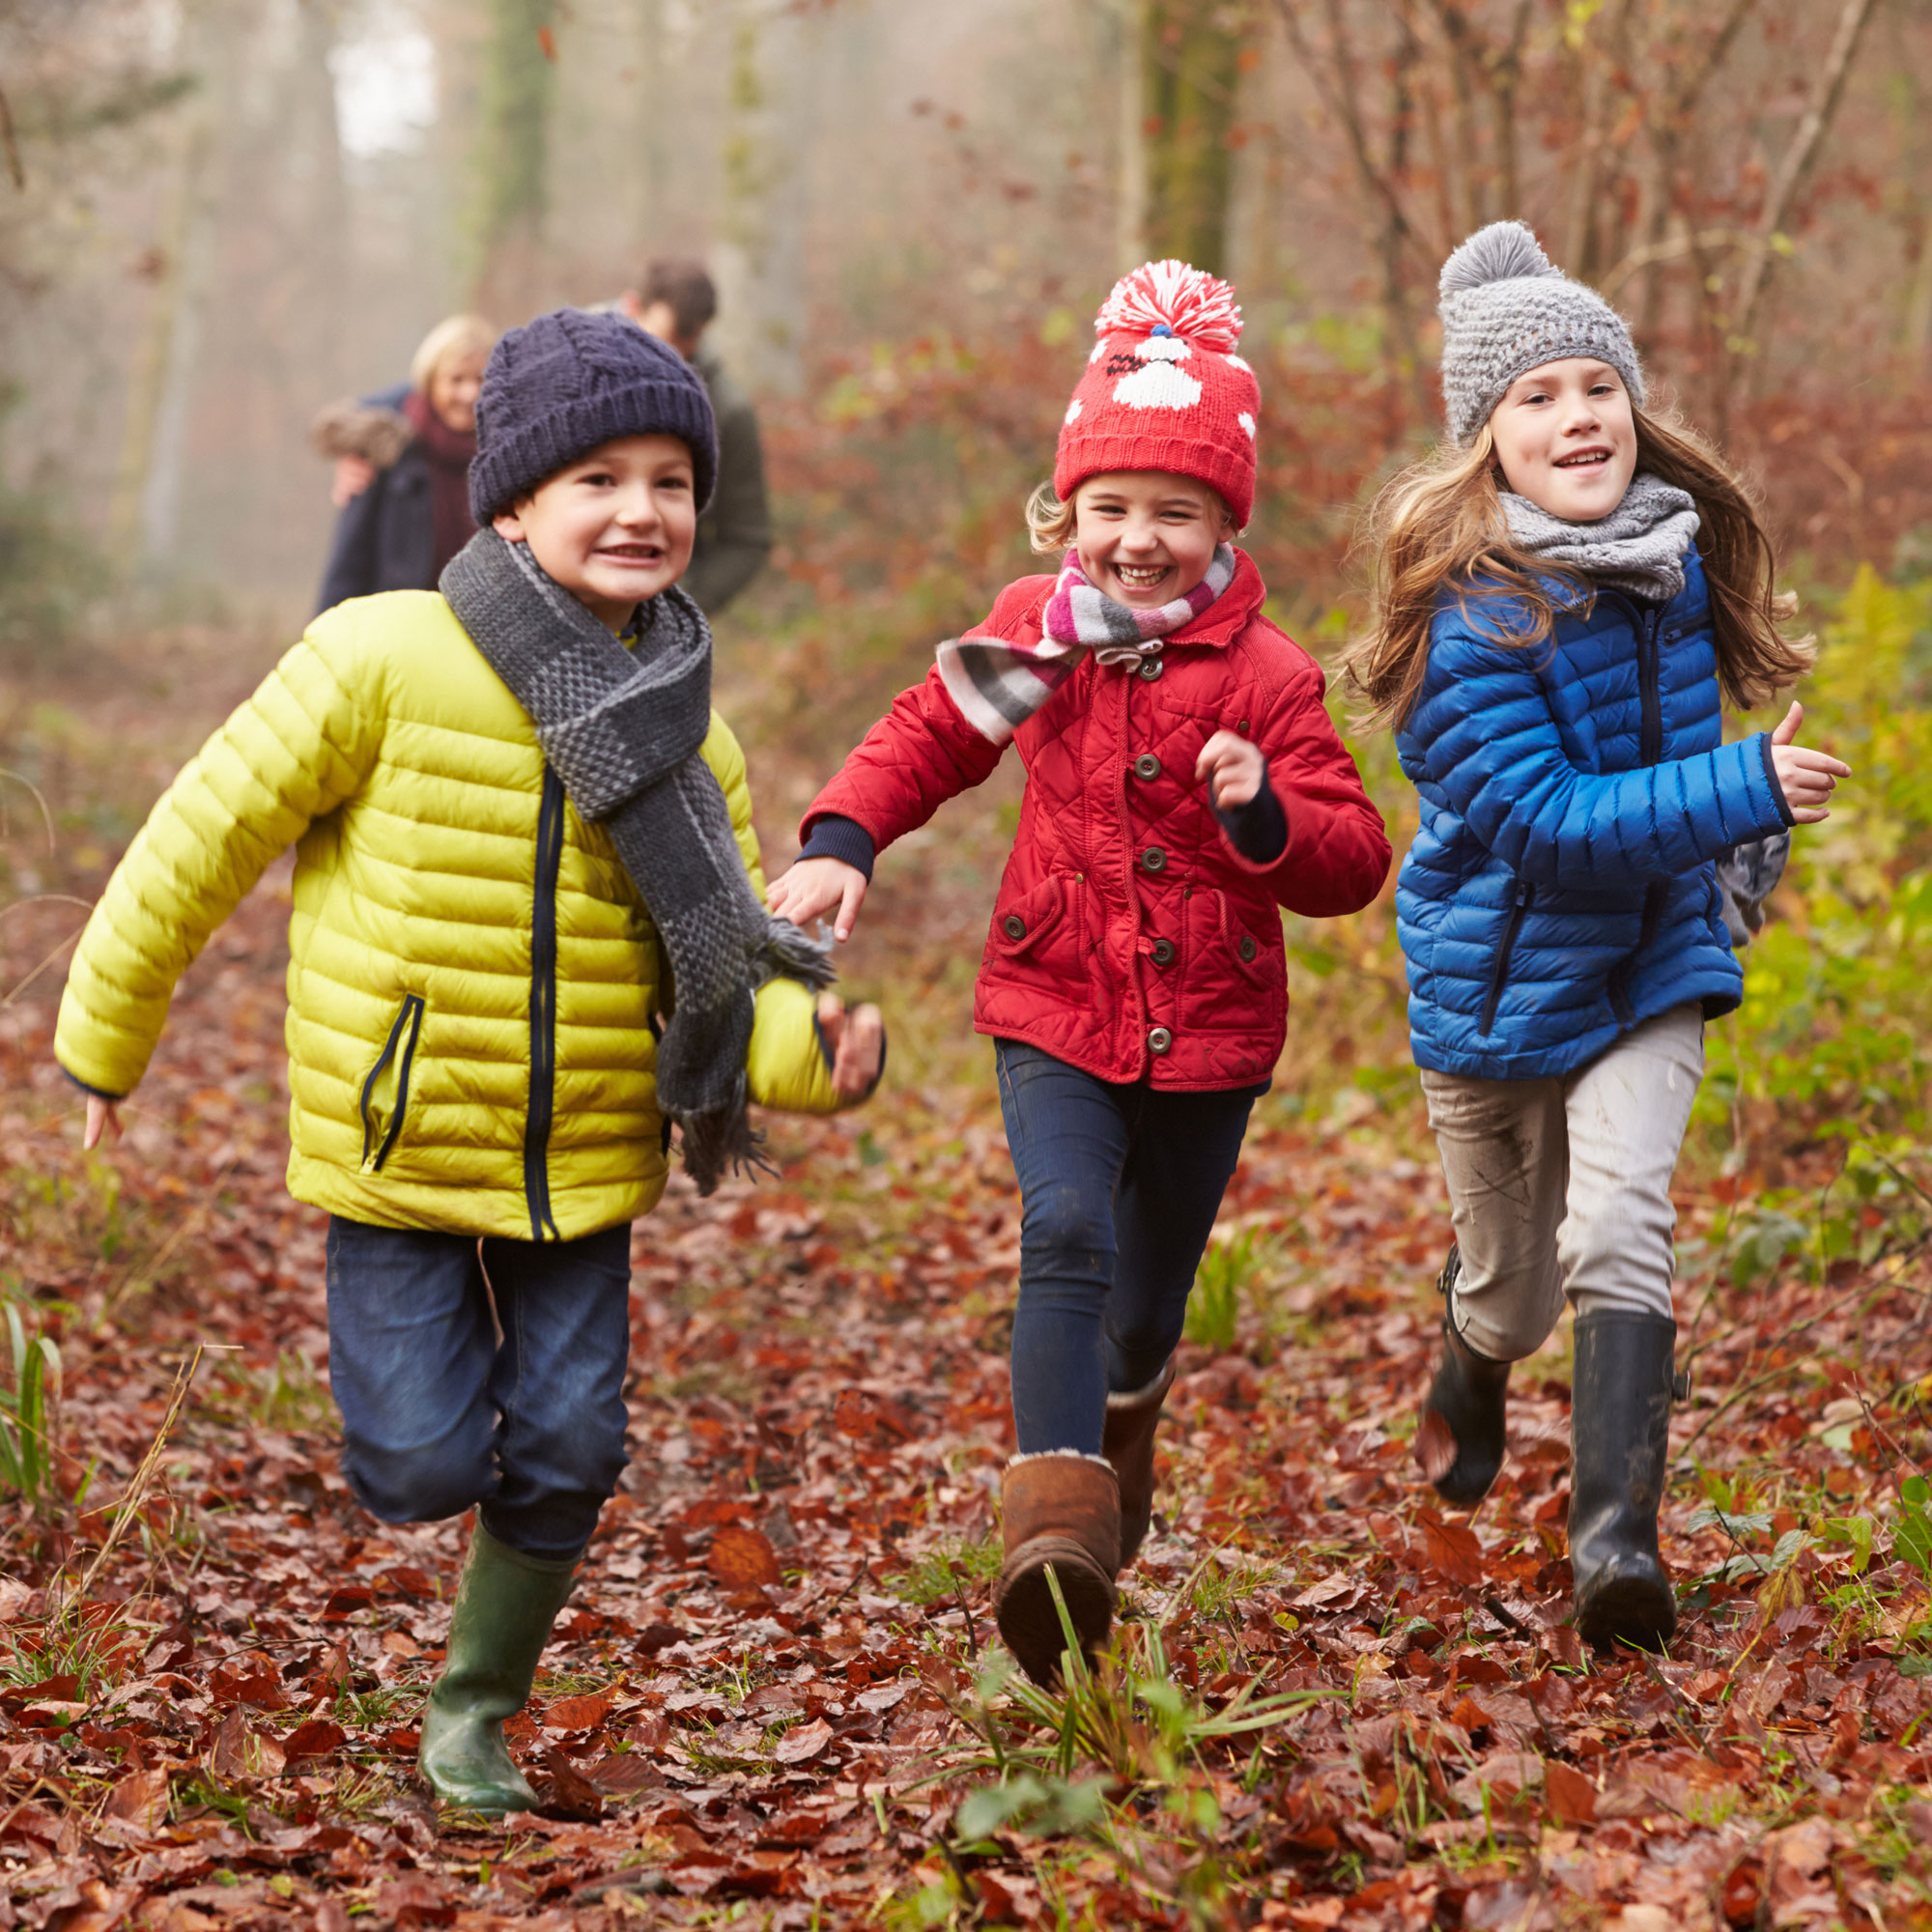 Three happy kids running in the forest.